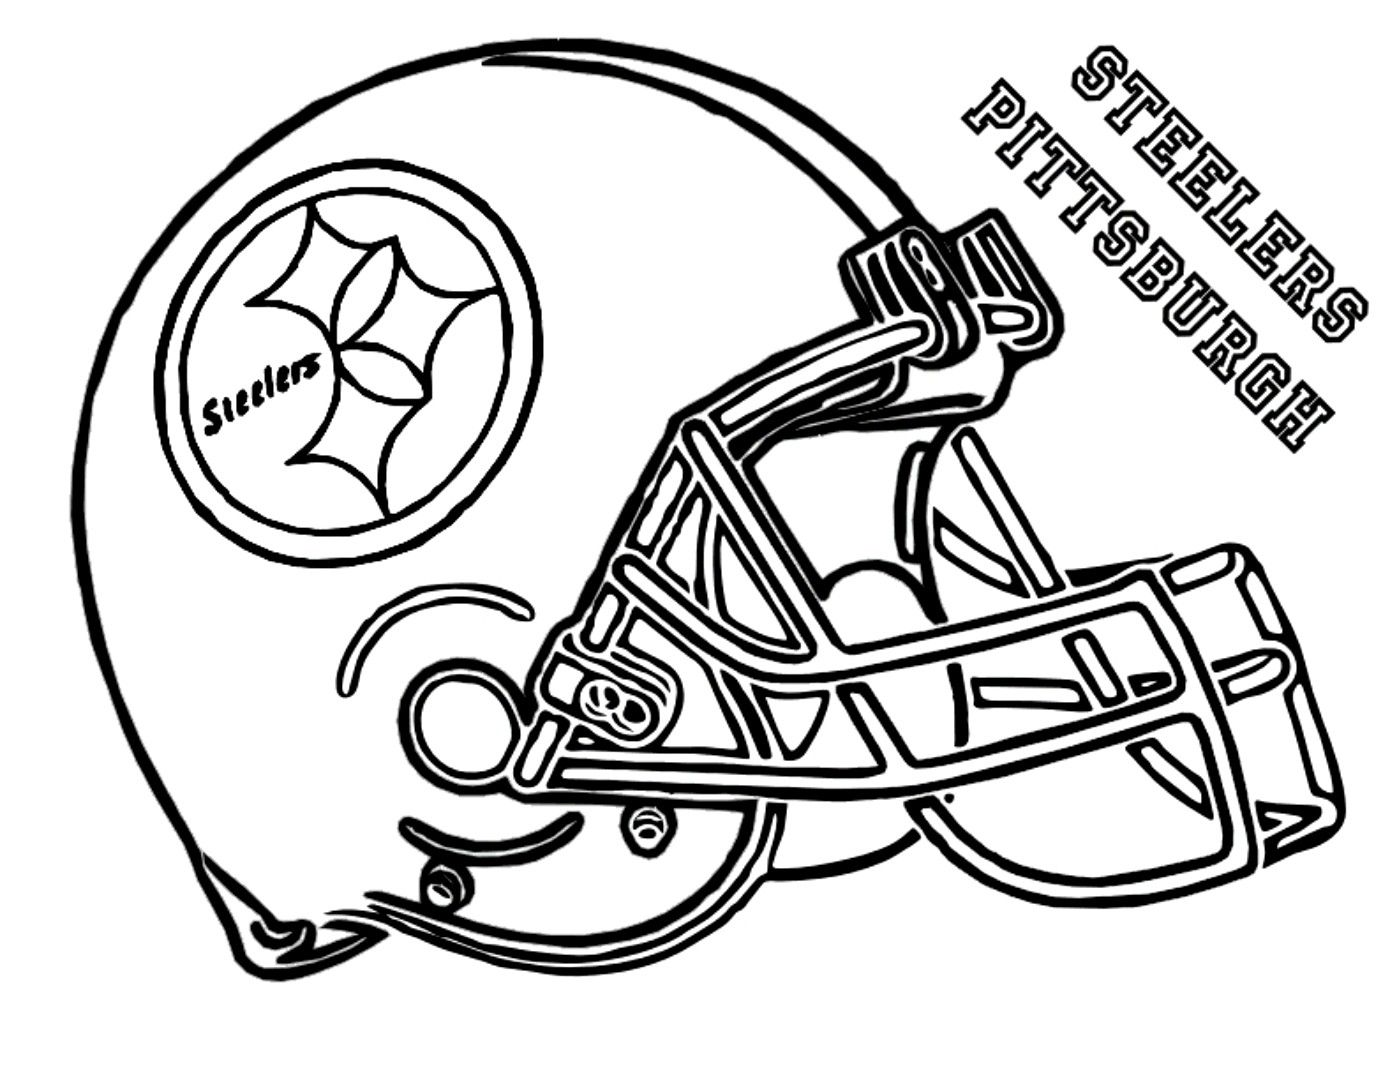 nfl coloring sheets football helmets nfl helmet coloring pages at getcoloringscom free helmets sheets football nfl coloring